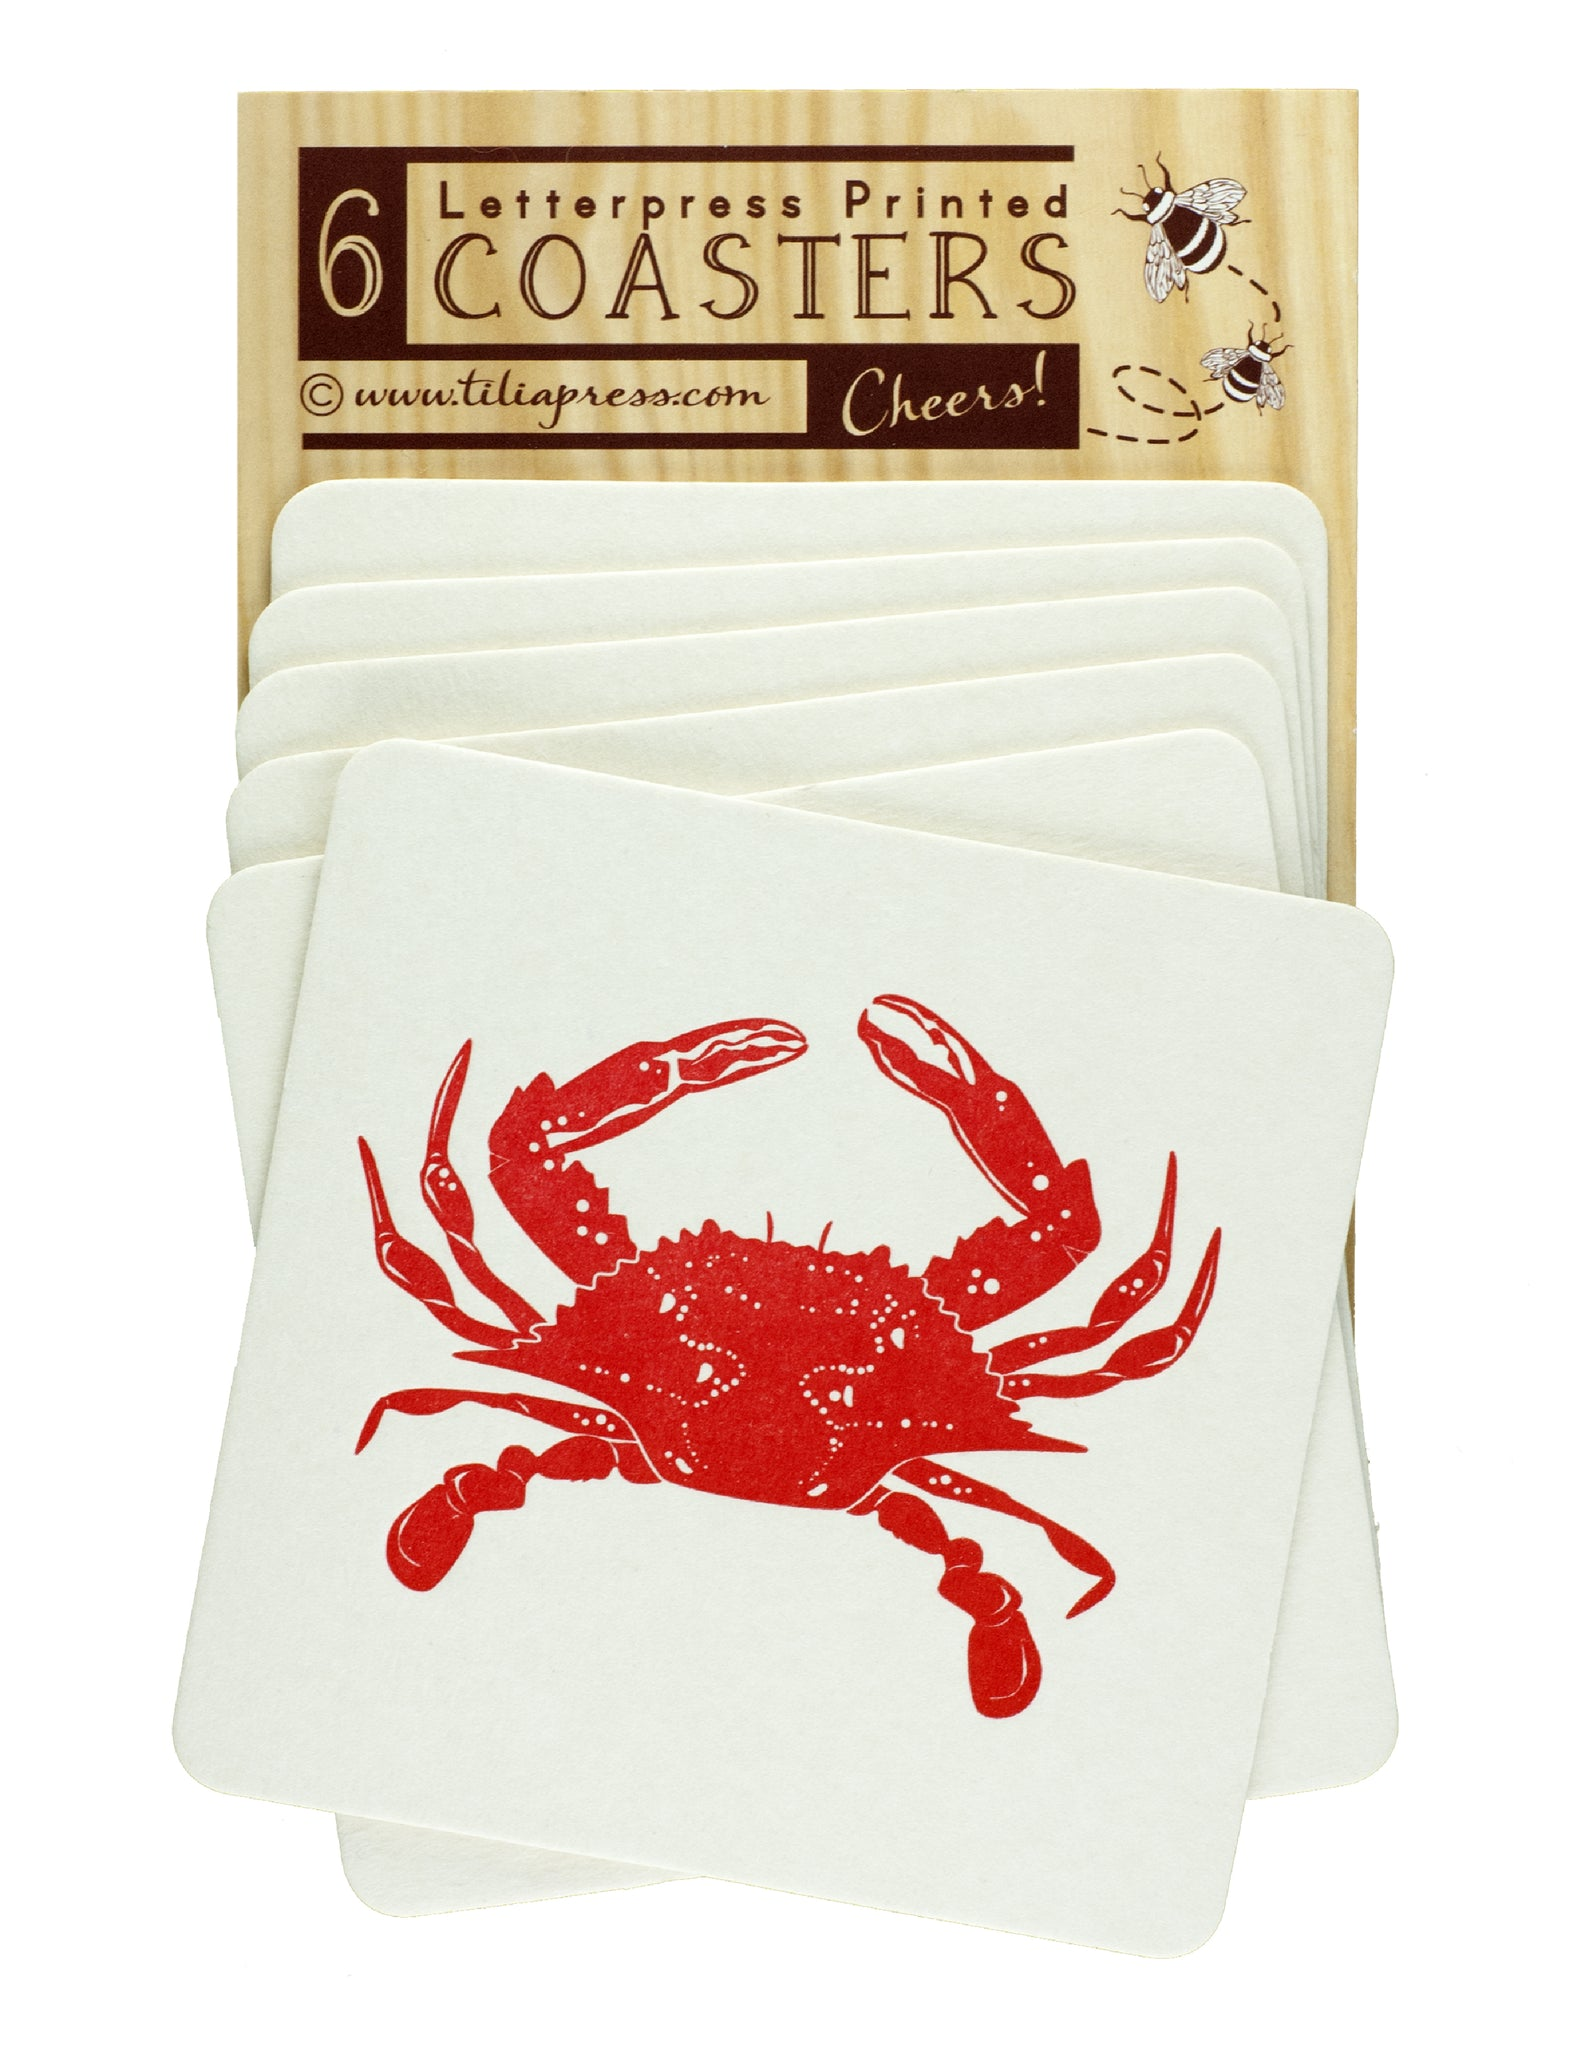 Red Crab Letterpress Coasters - Crab Feast, Beach Party, Birthday Coasters